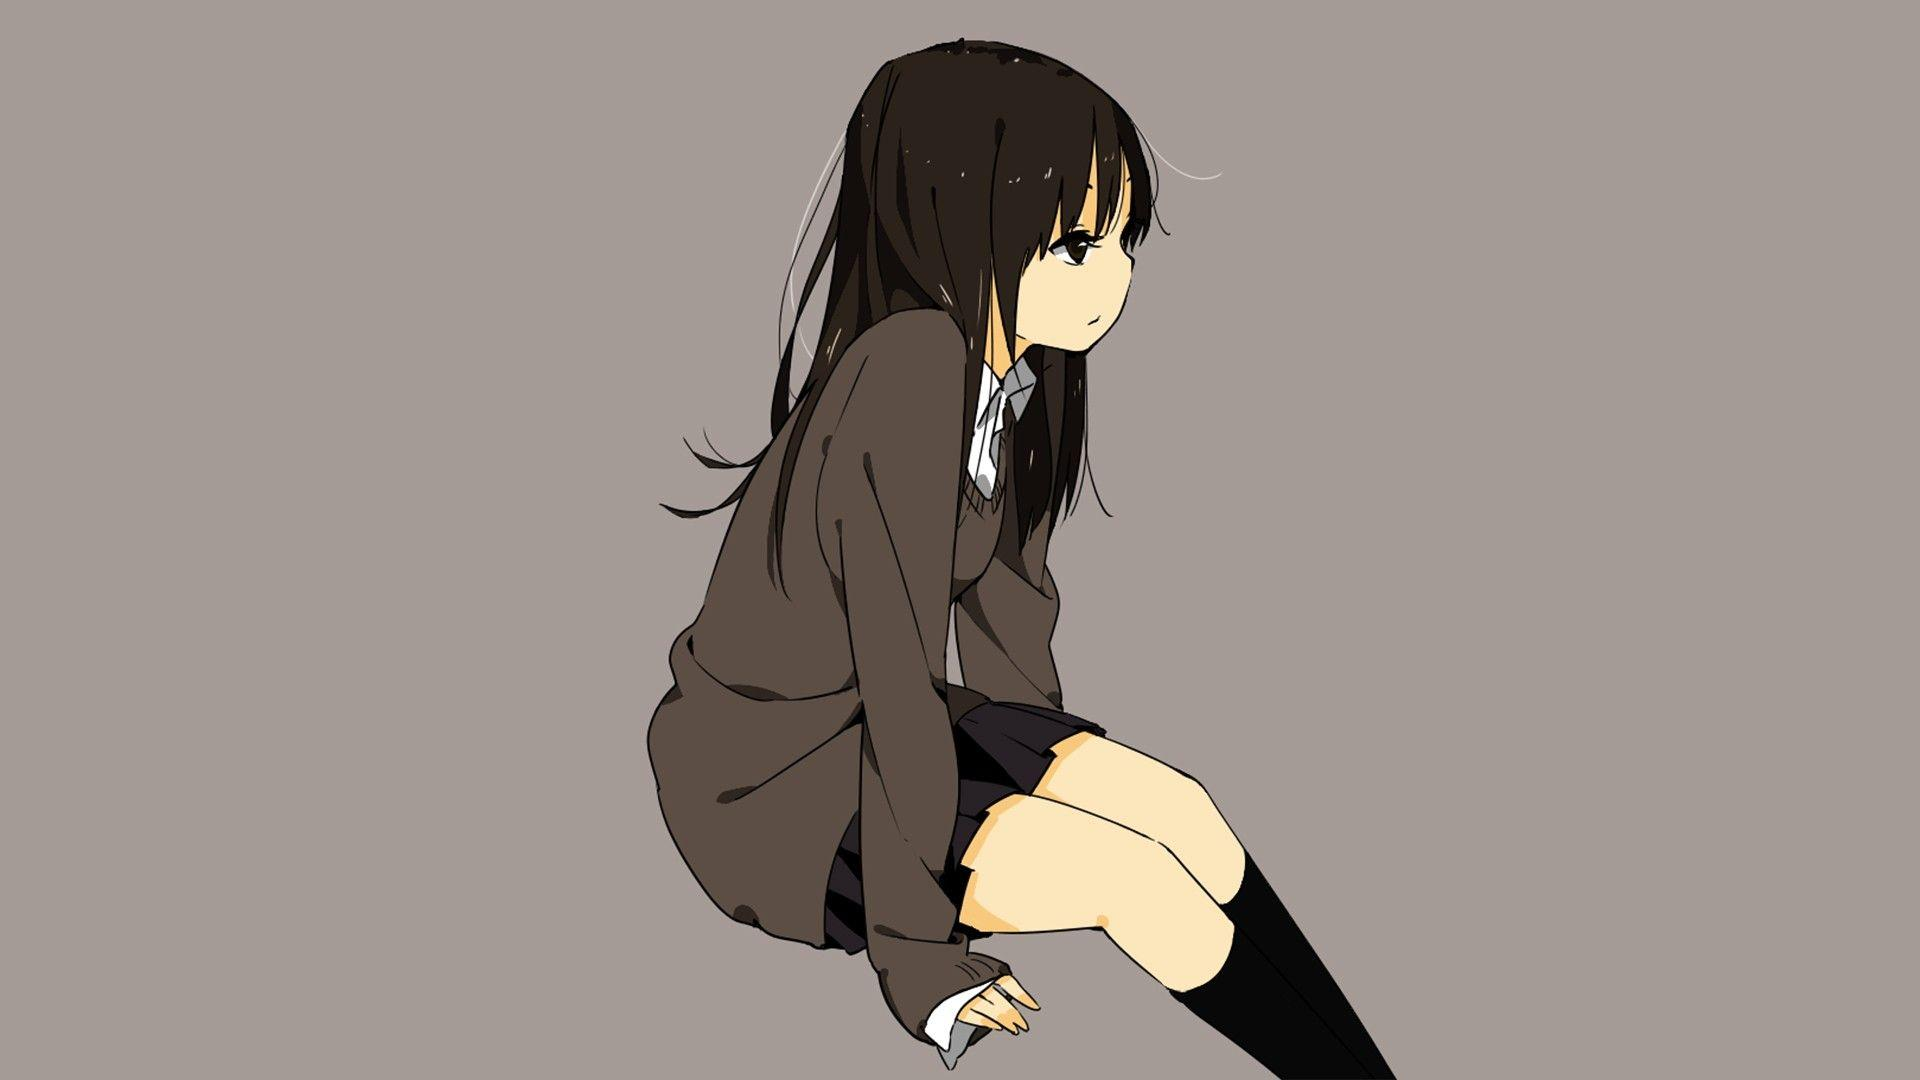 Sad Anime Girl HD Wallpapers